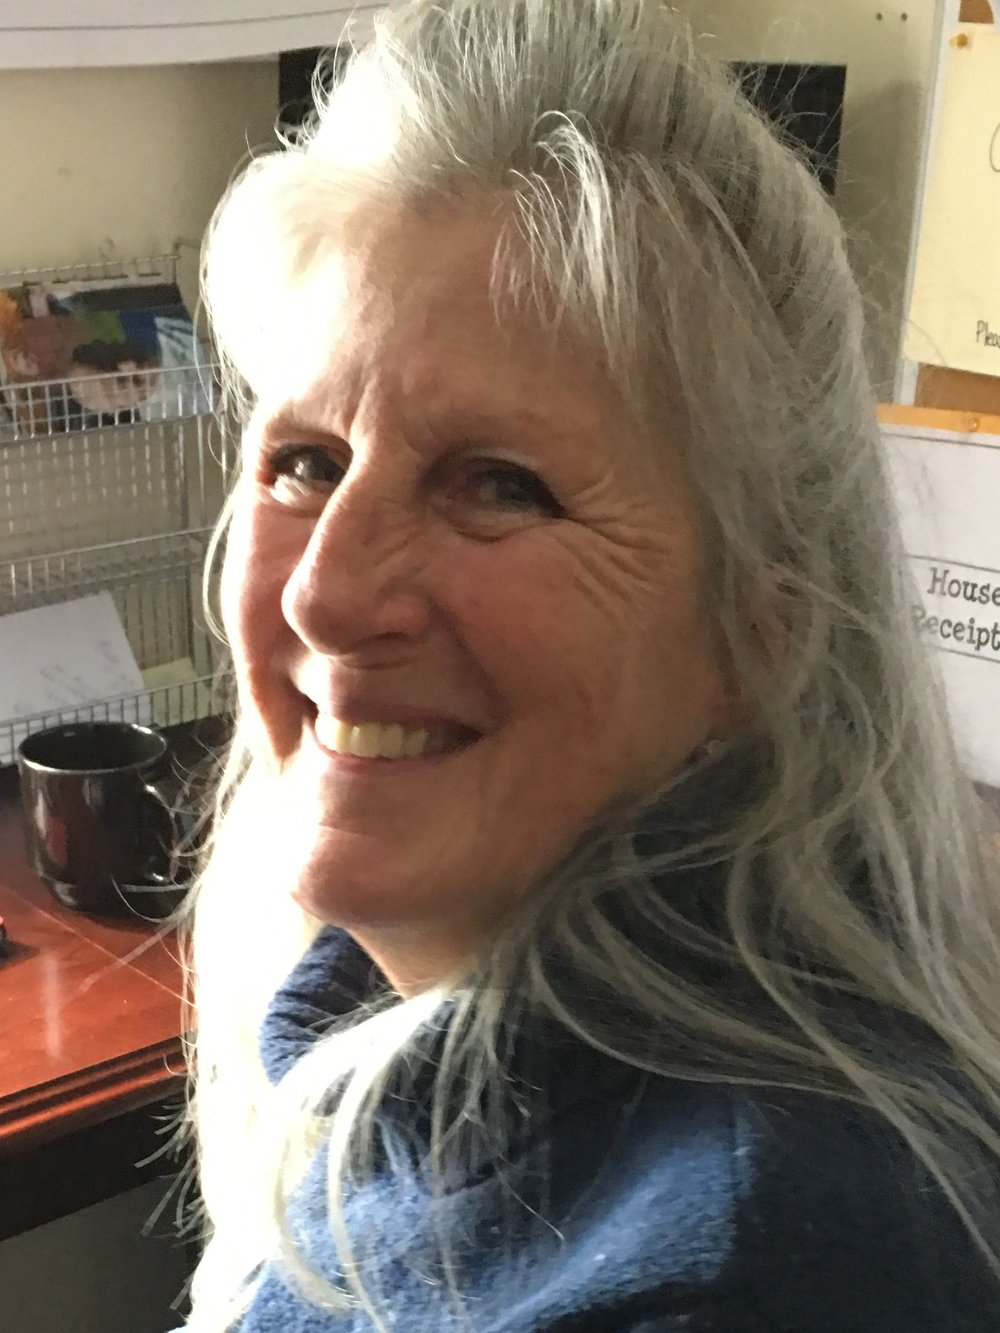 It's been more than 2 decades since Jane Mead started working with several of our clients that she now serves. She met them when they lived at the now-closed Pineland state facility.